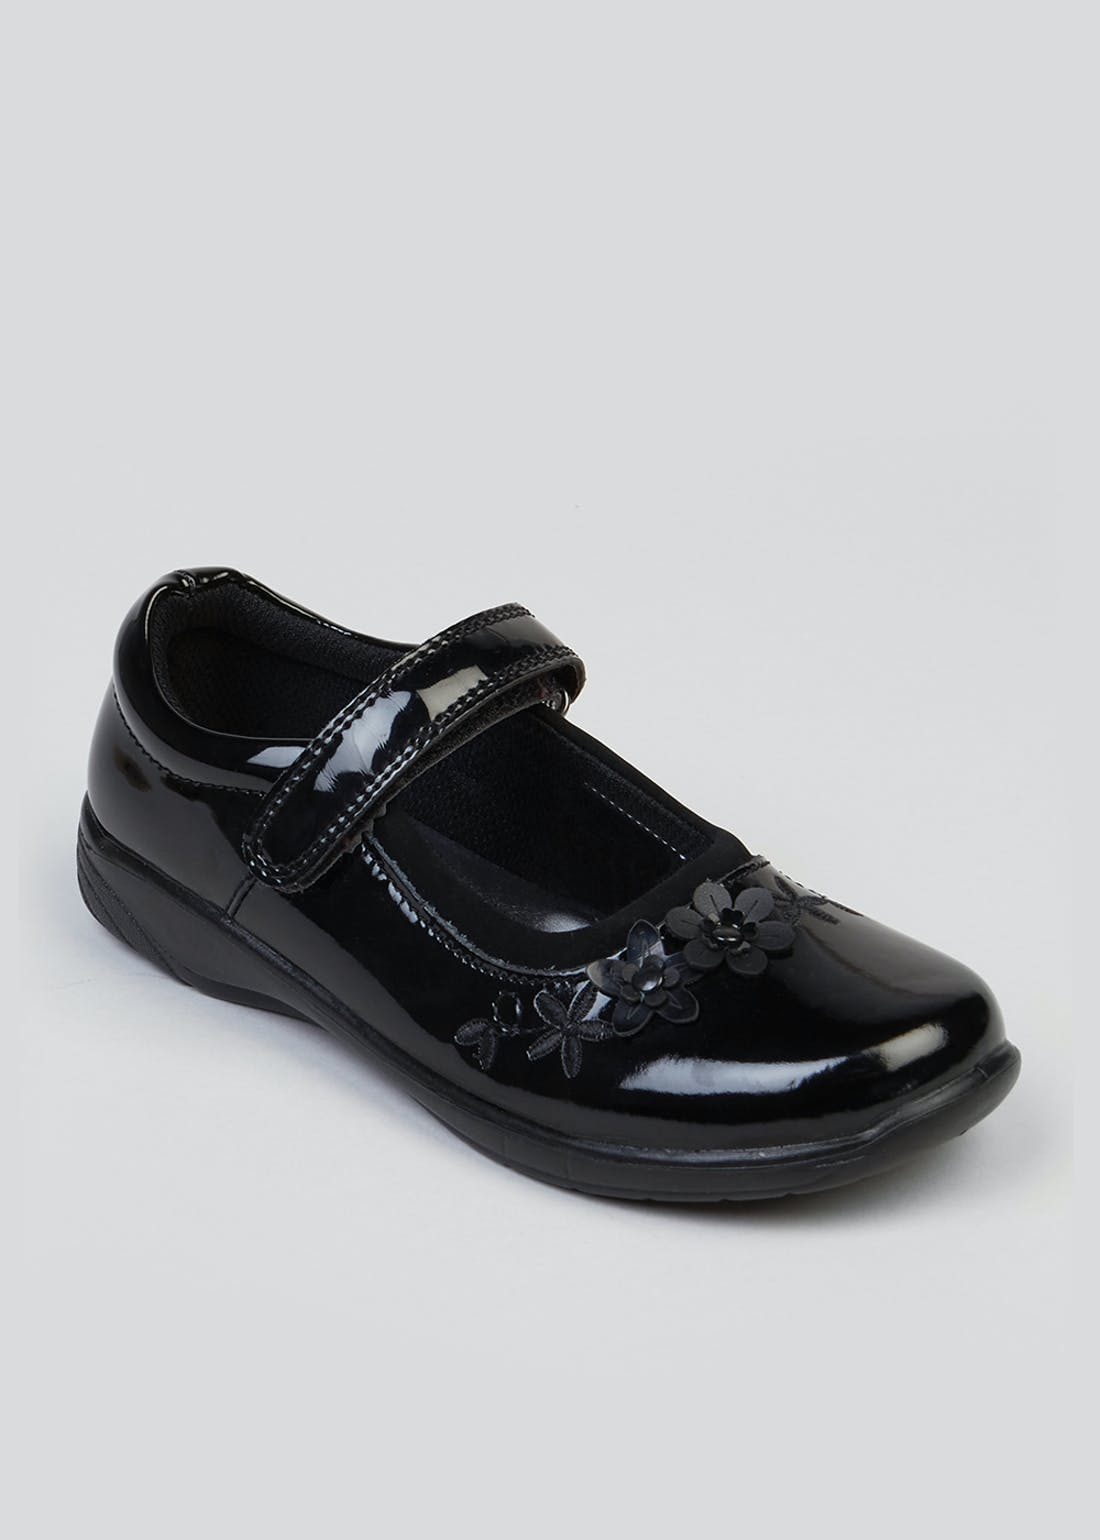 Girls Black Coated Patent Leather School Shoes (Younger 8-Older 3)